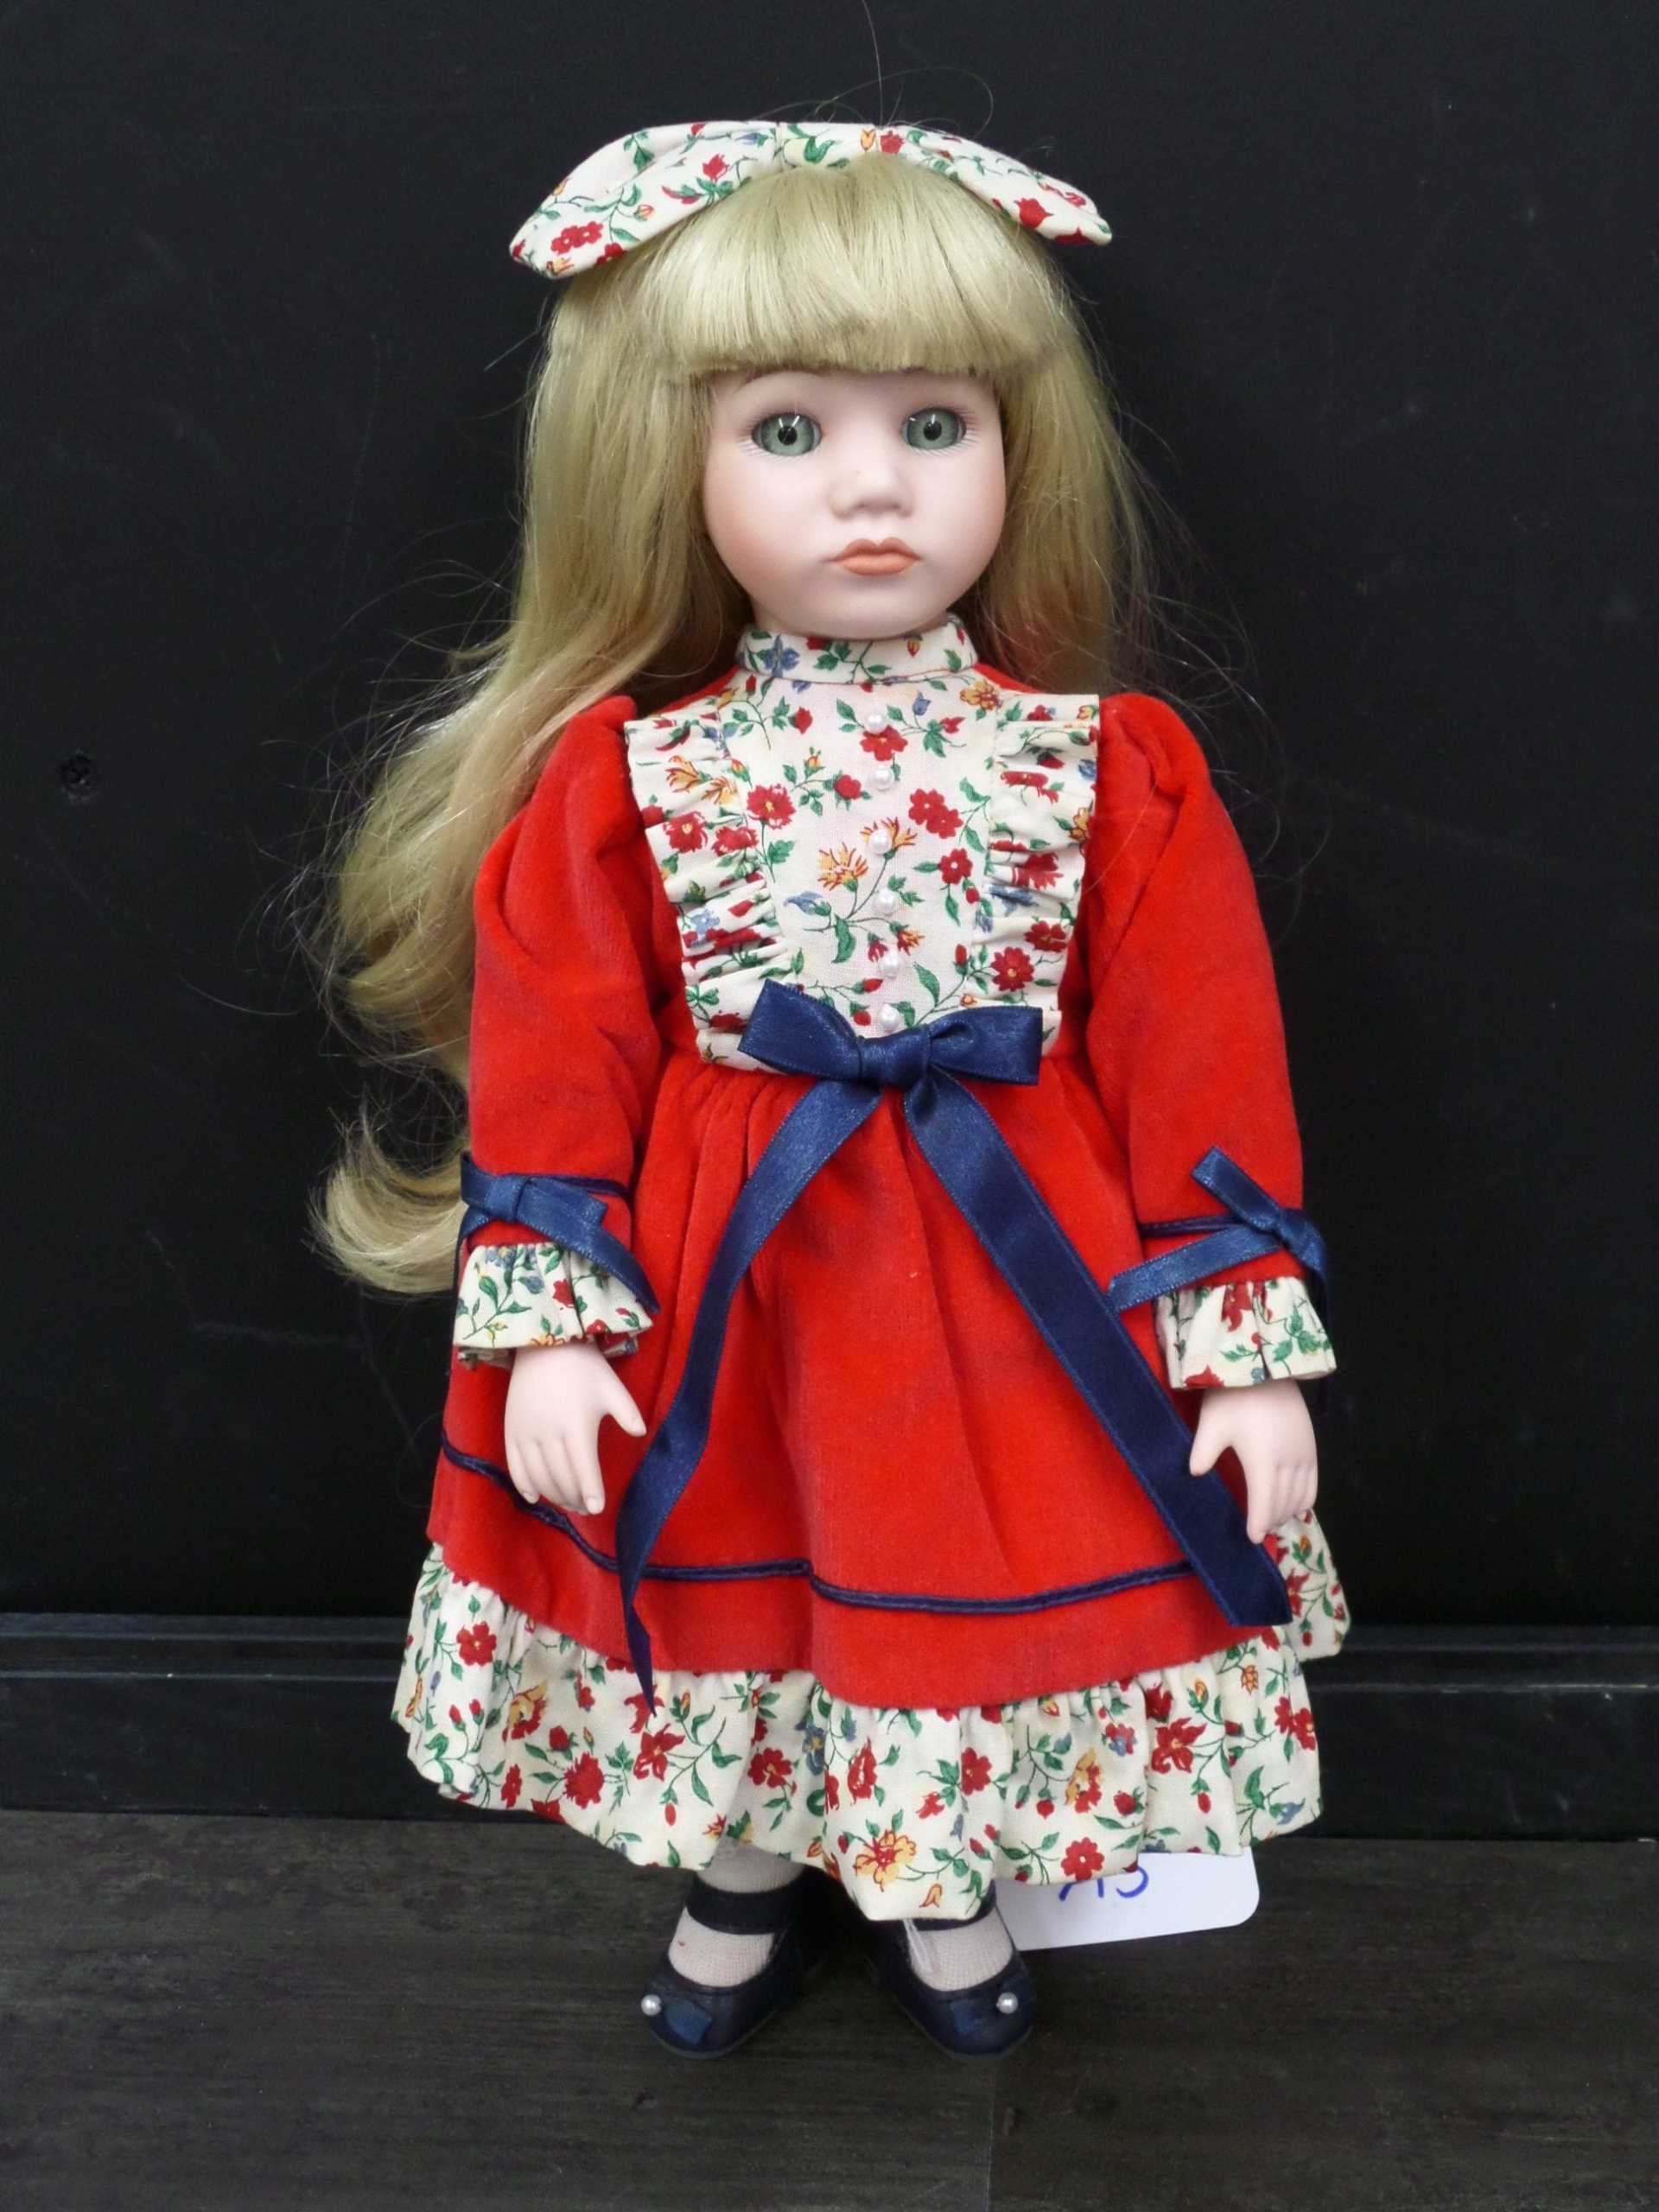 MUSICAL HOLIDAY PORCELAIN DOLL <br/> Donated by: WPBS SUPPORTER <br/> Valued at: $50 <br/> Buy It Now: $10